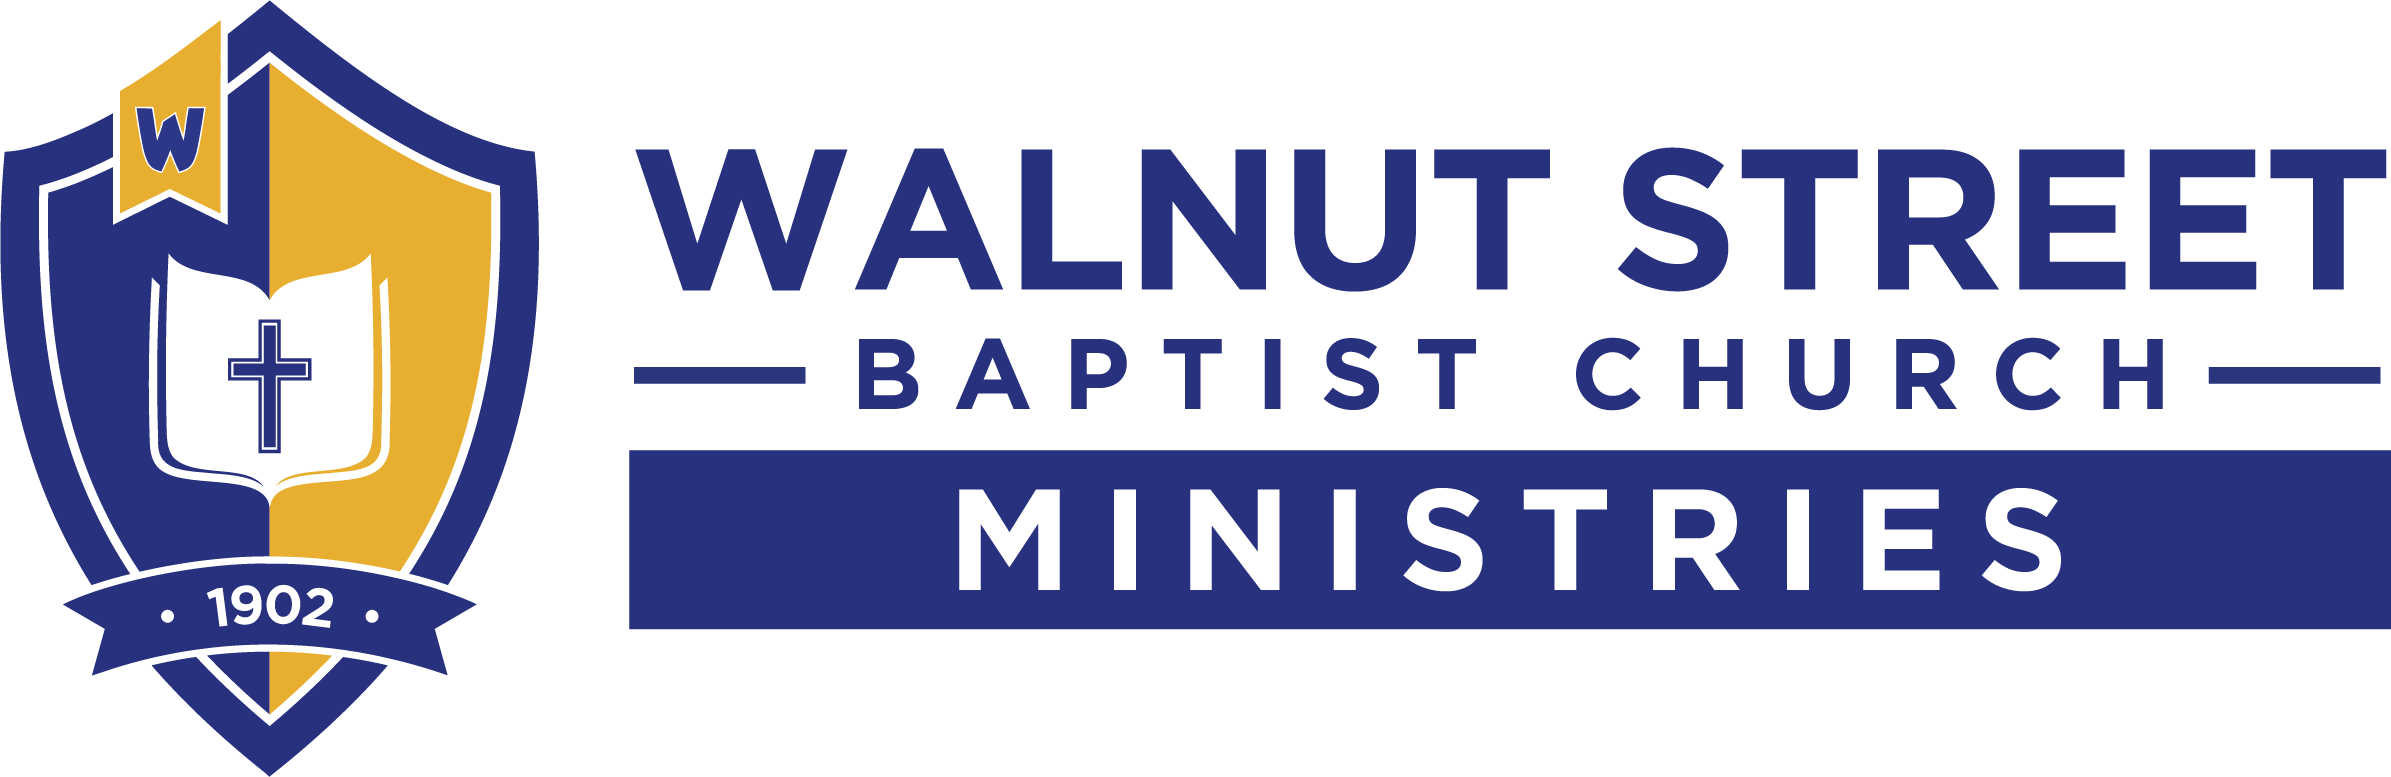 Walnut Street Baptist Church Ministries